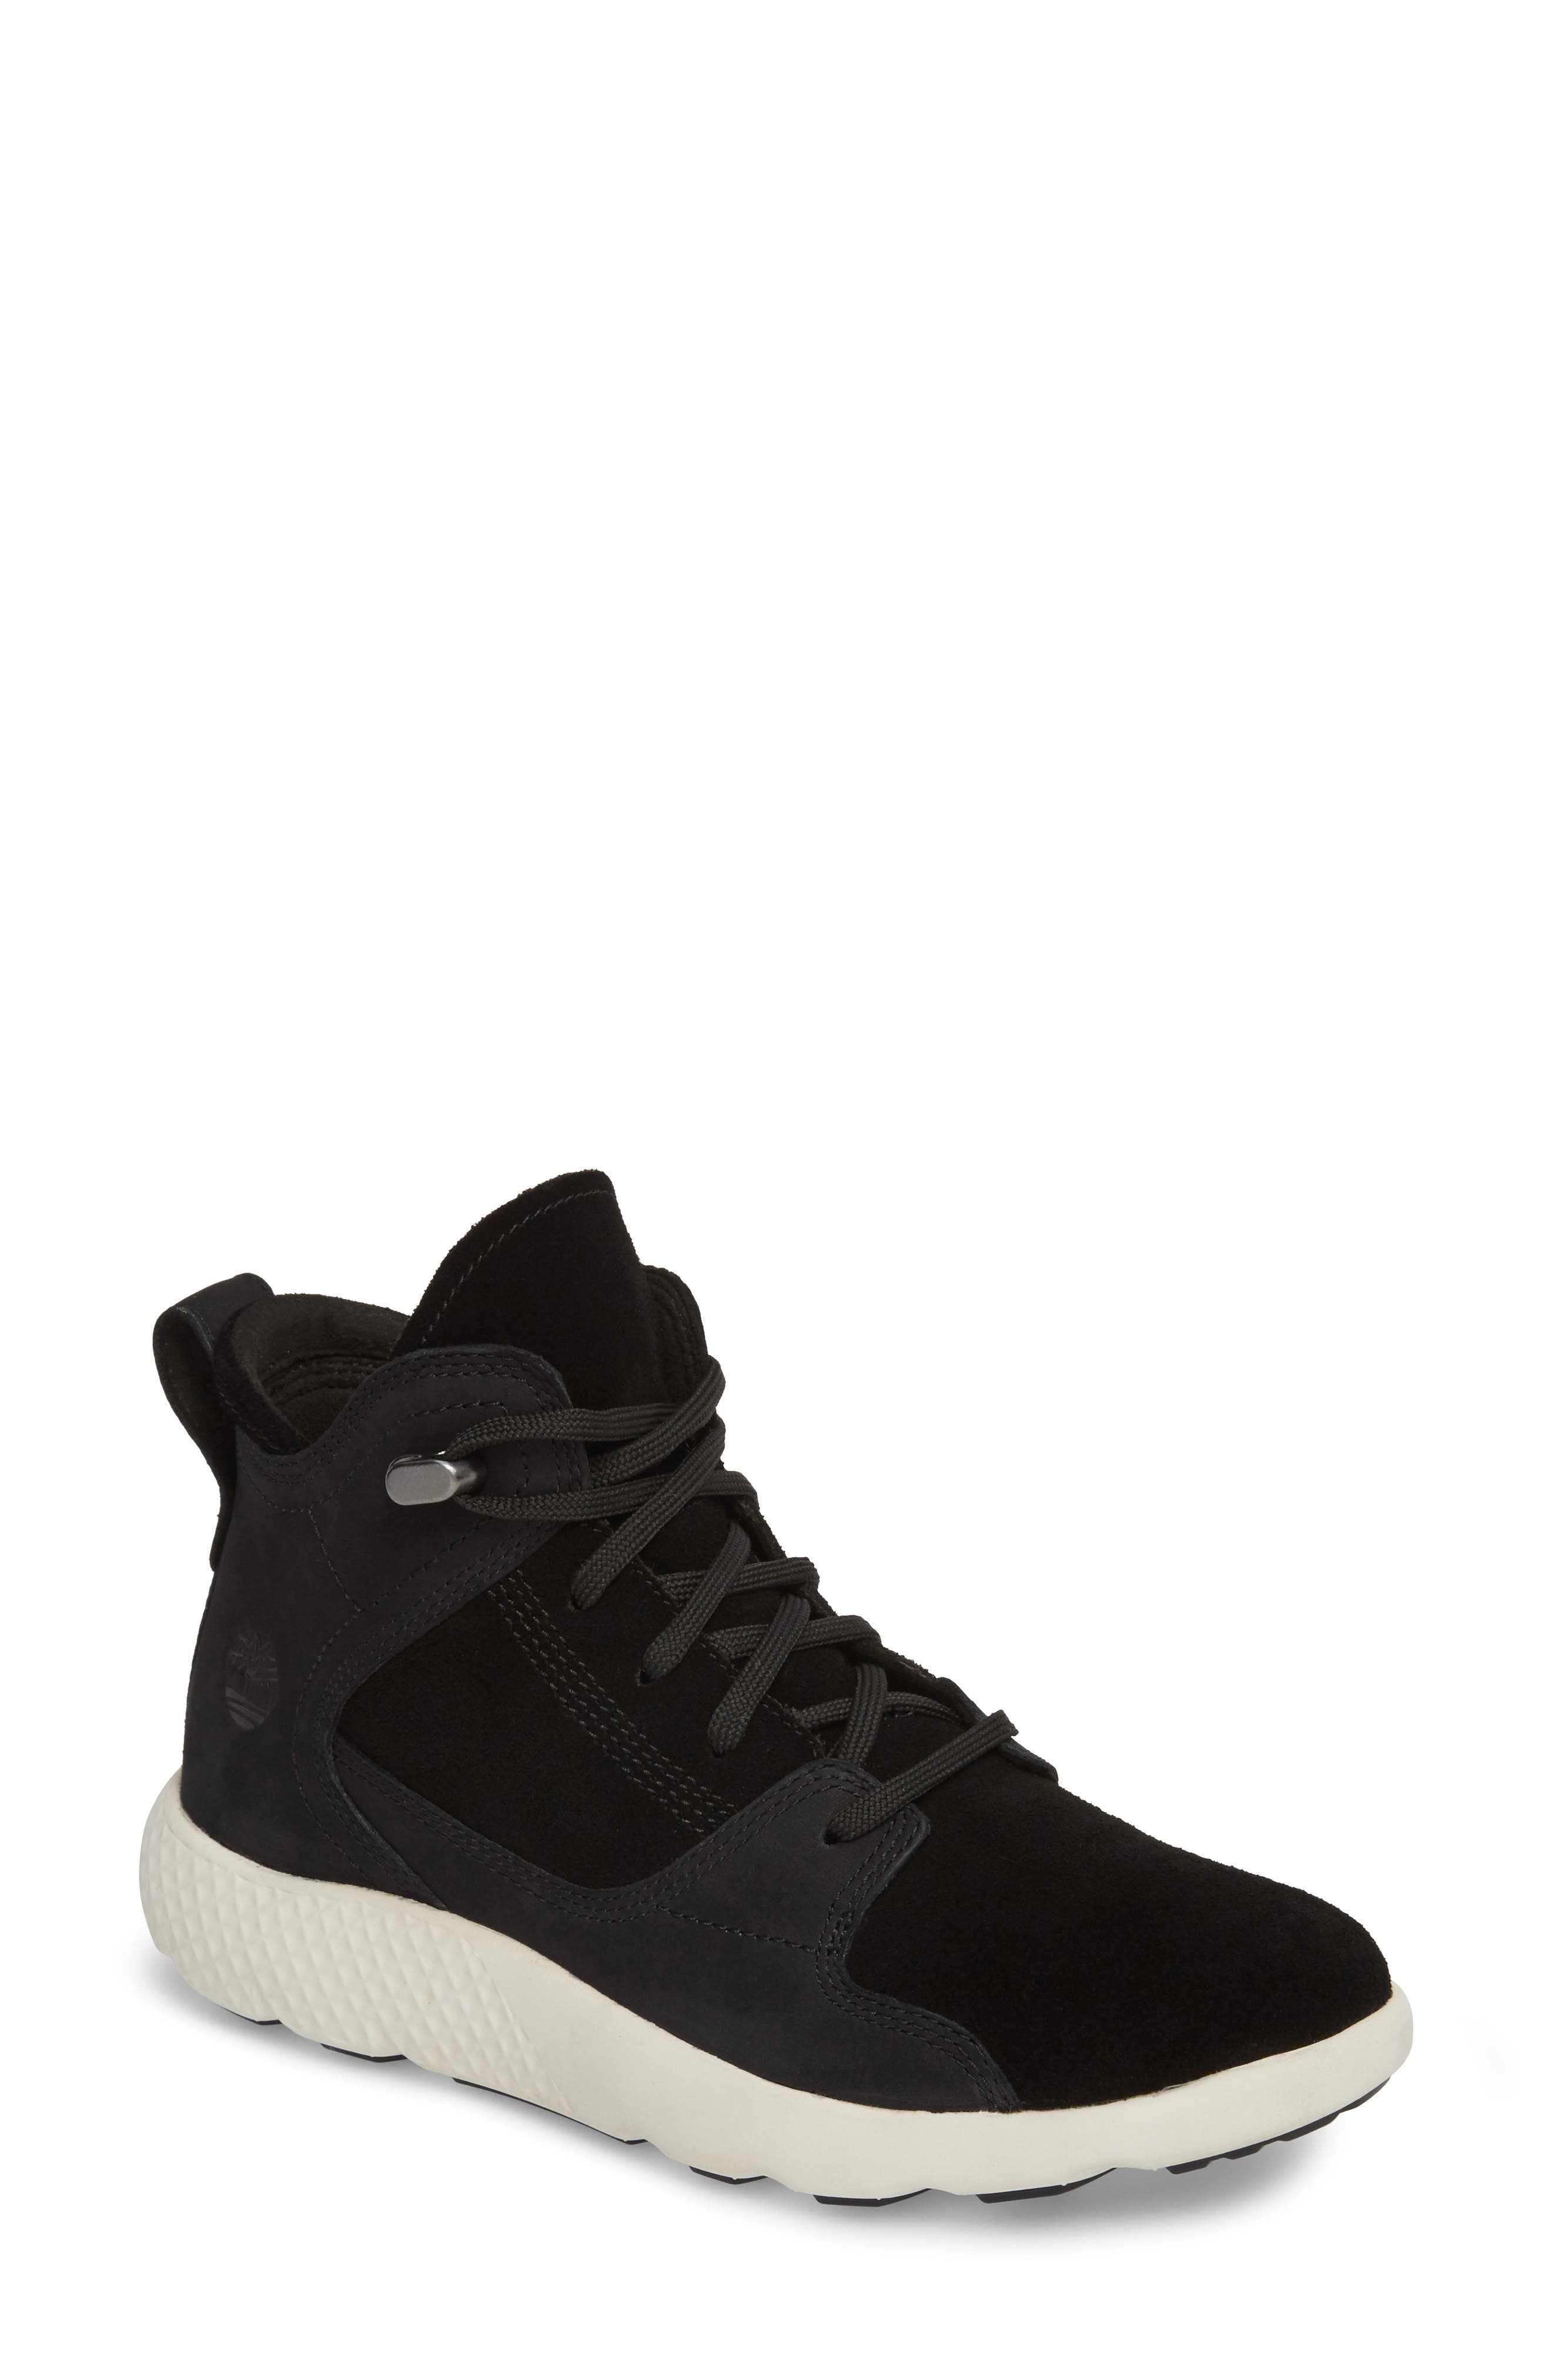 FlyRoam Sneaker,                         Main,                         color,